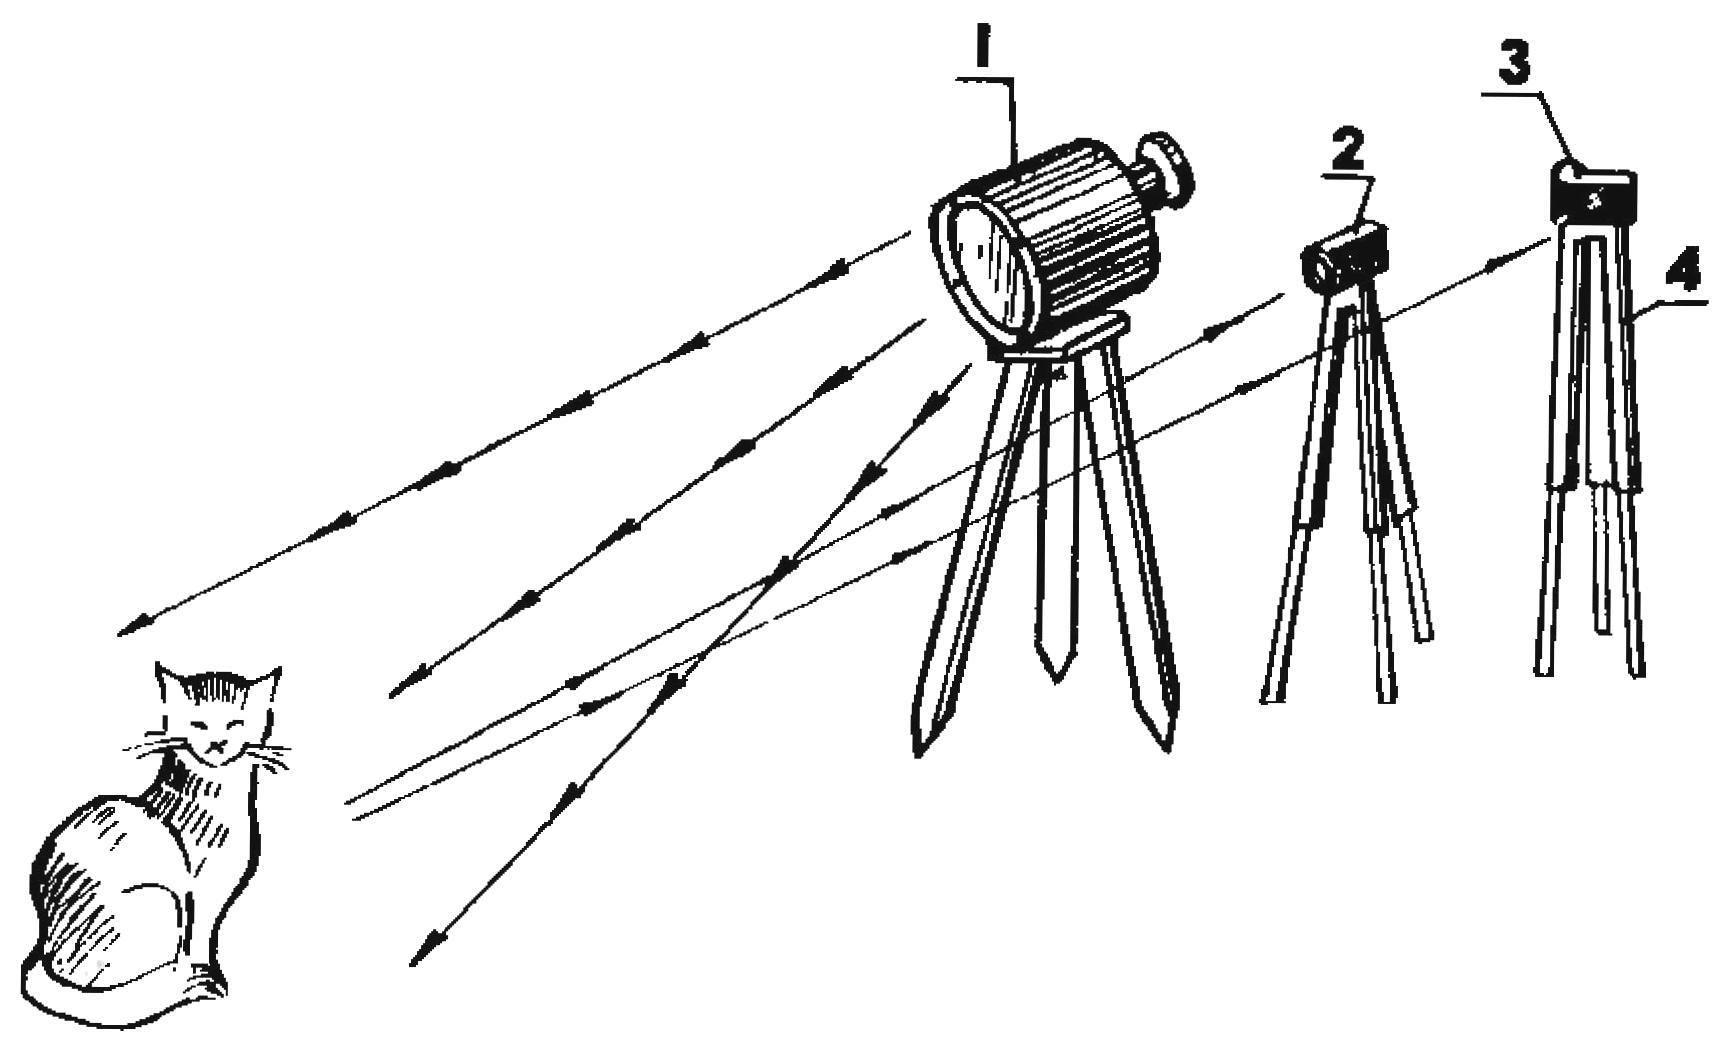 Placement of equipment in case of special types of photos and videos